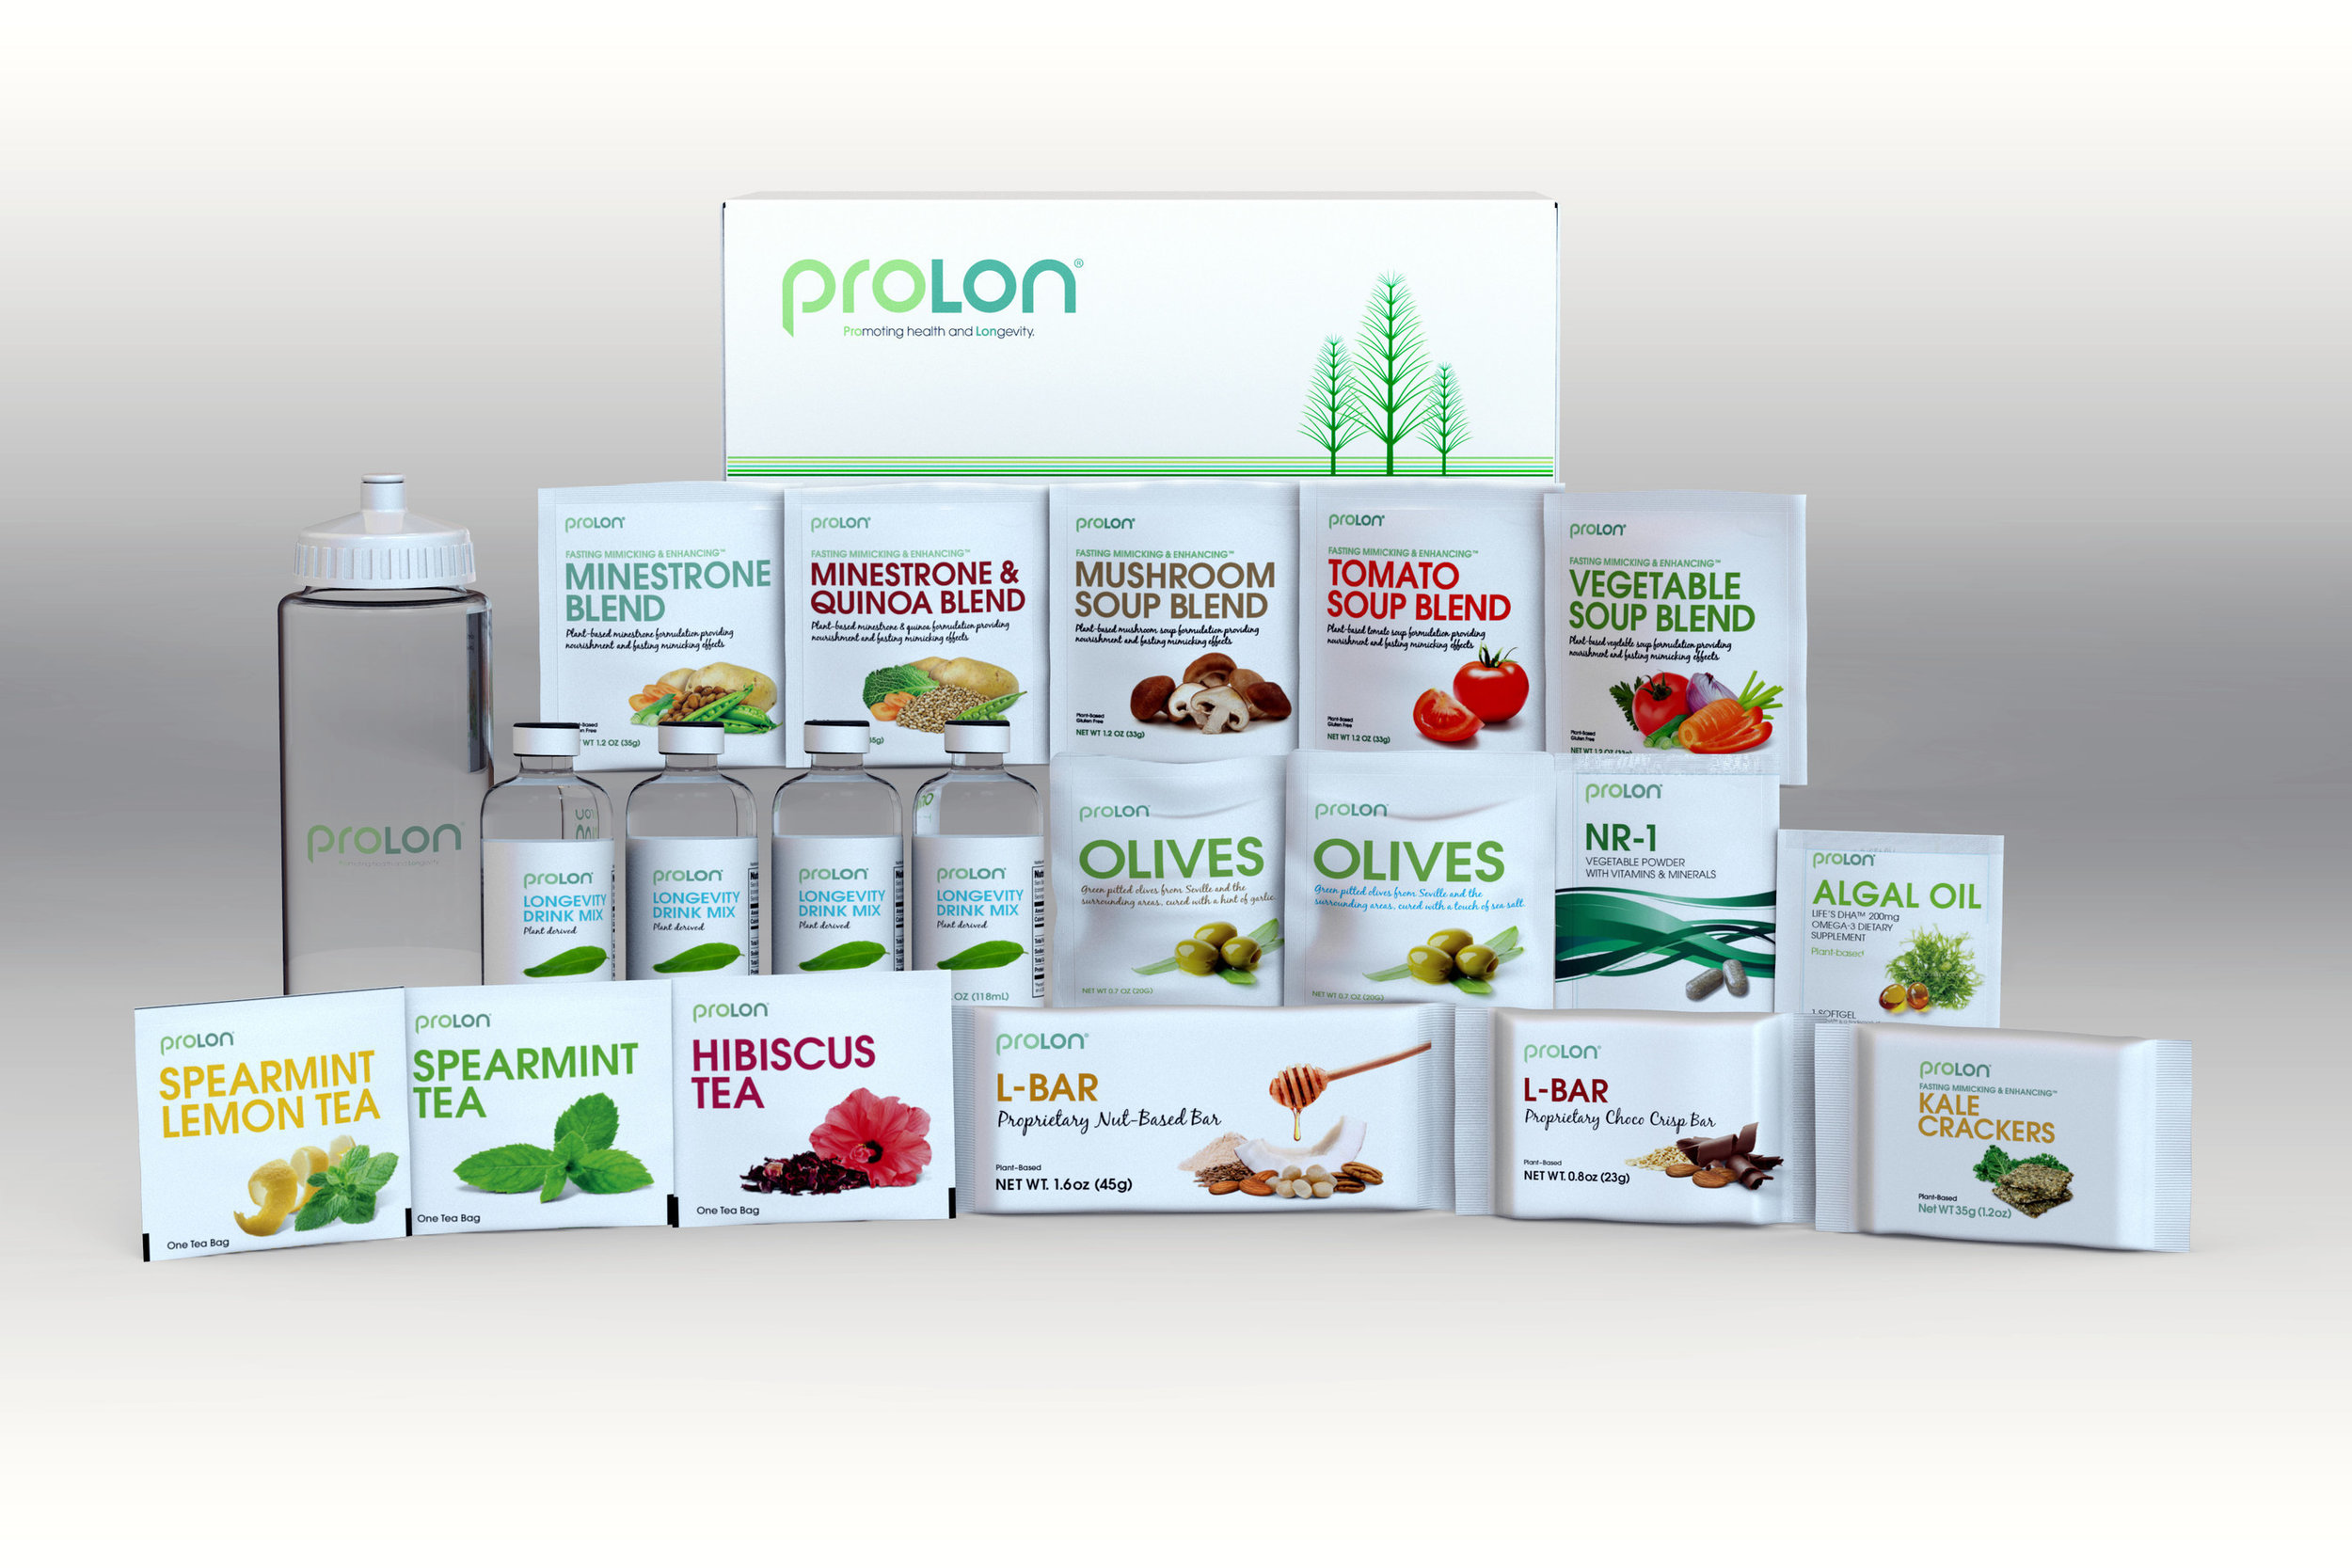 ProLon Fasting Mimicking Diet (FMD) -